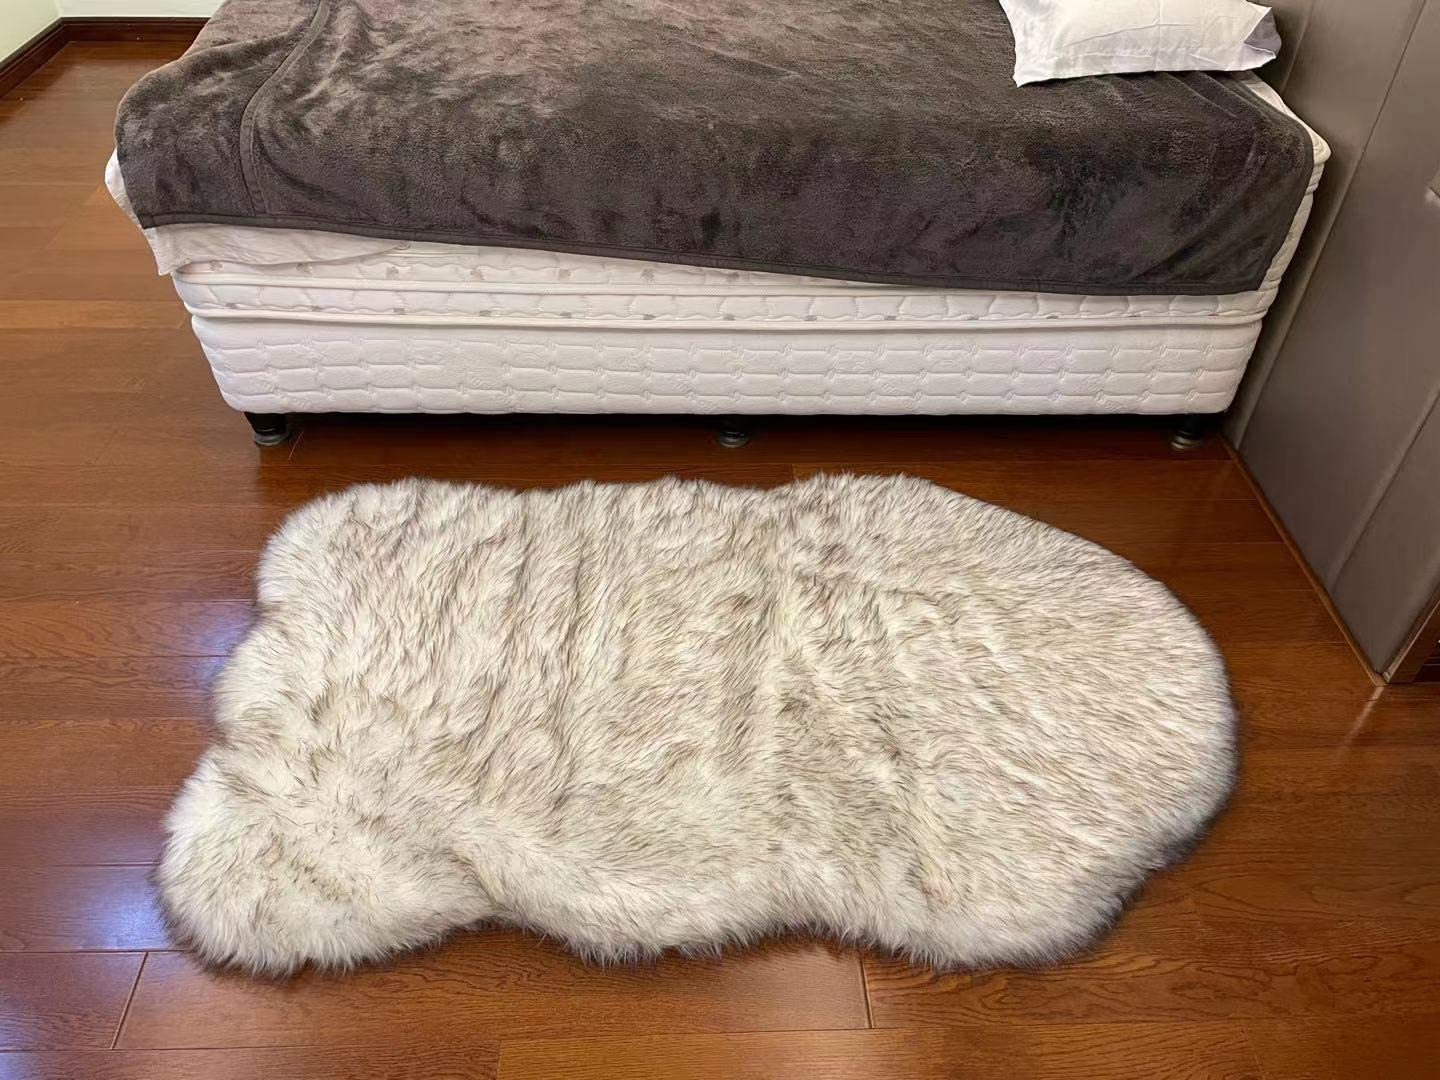 Spring Max 68% OFF Blossoms Dog Mat Curve White lowest price Winter Cu Pet Soft Cozy Warm